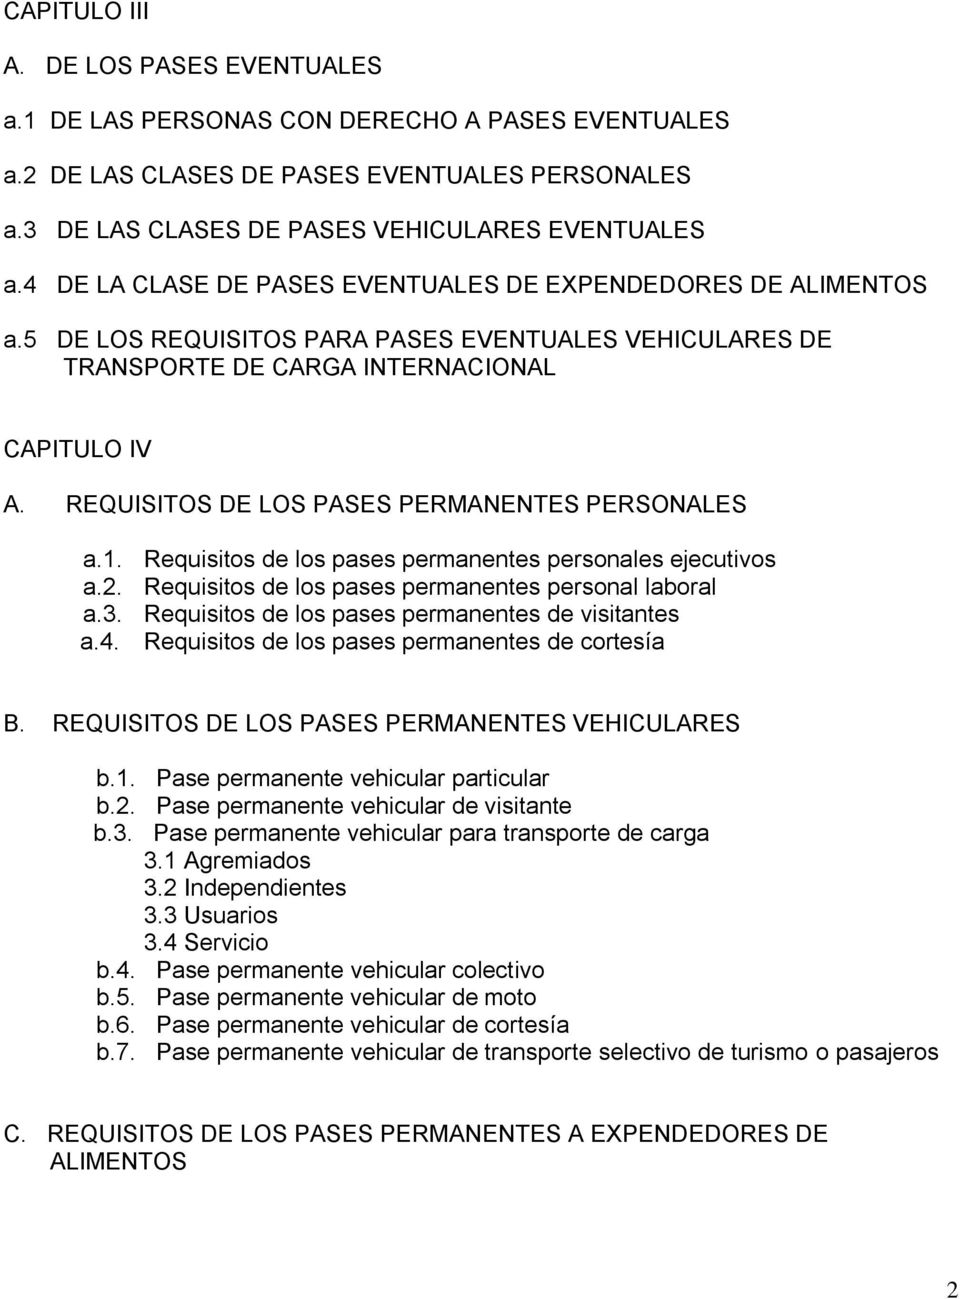 REQUISITOS DE LOS PASES PERMANENTES PERSONALES a.1. Requisitos de los pases permanentes personales ejecutivos a.2. Requisitos de los pases permanentes personal laboral a.3.